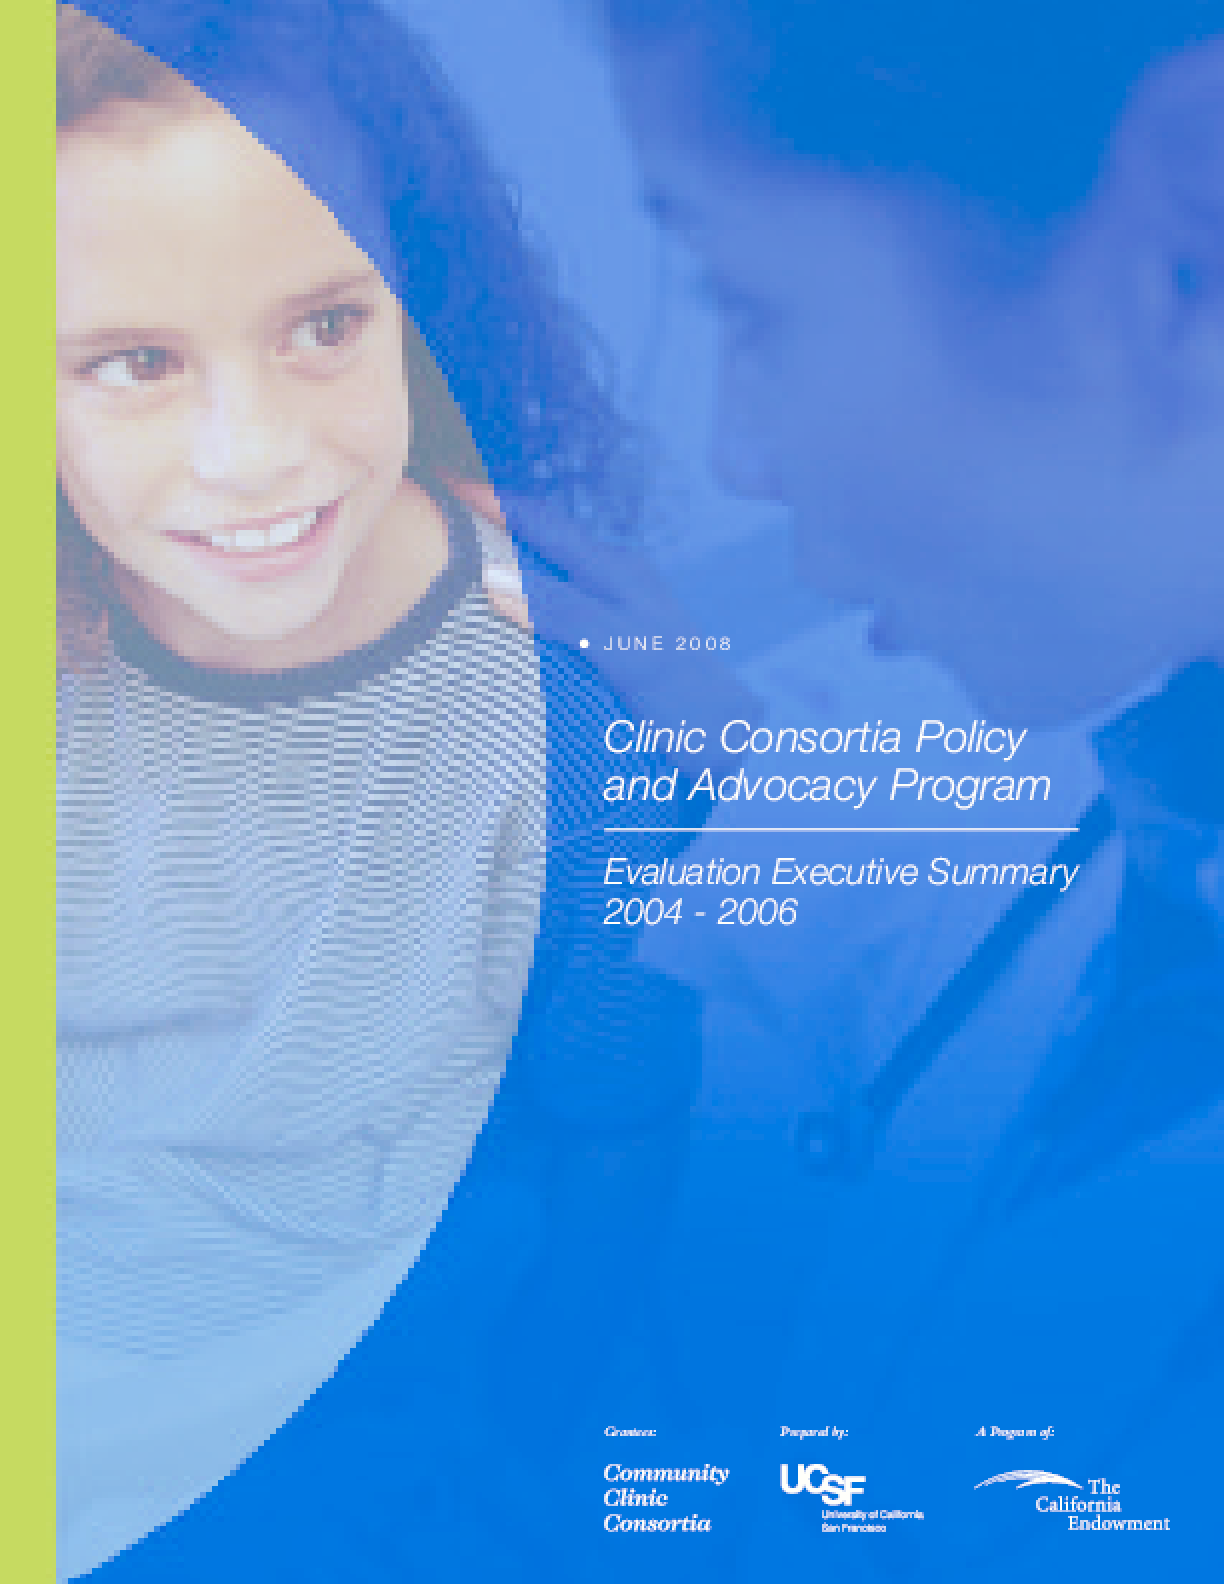 Clinic Consortia Policy and Advocacy Program: Evaluation Executive Summary 2004-2006